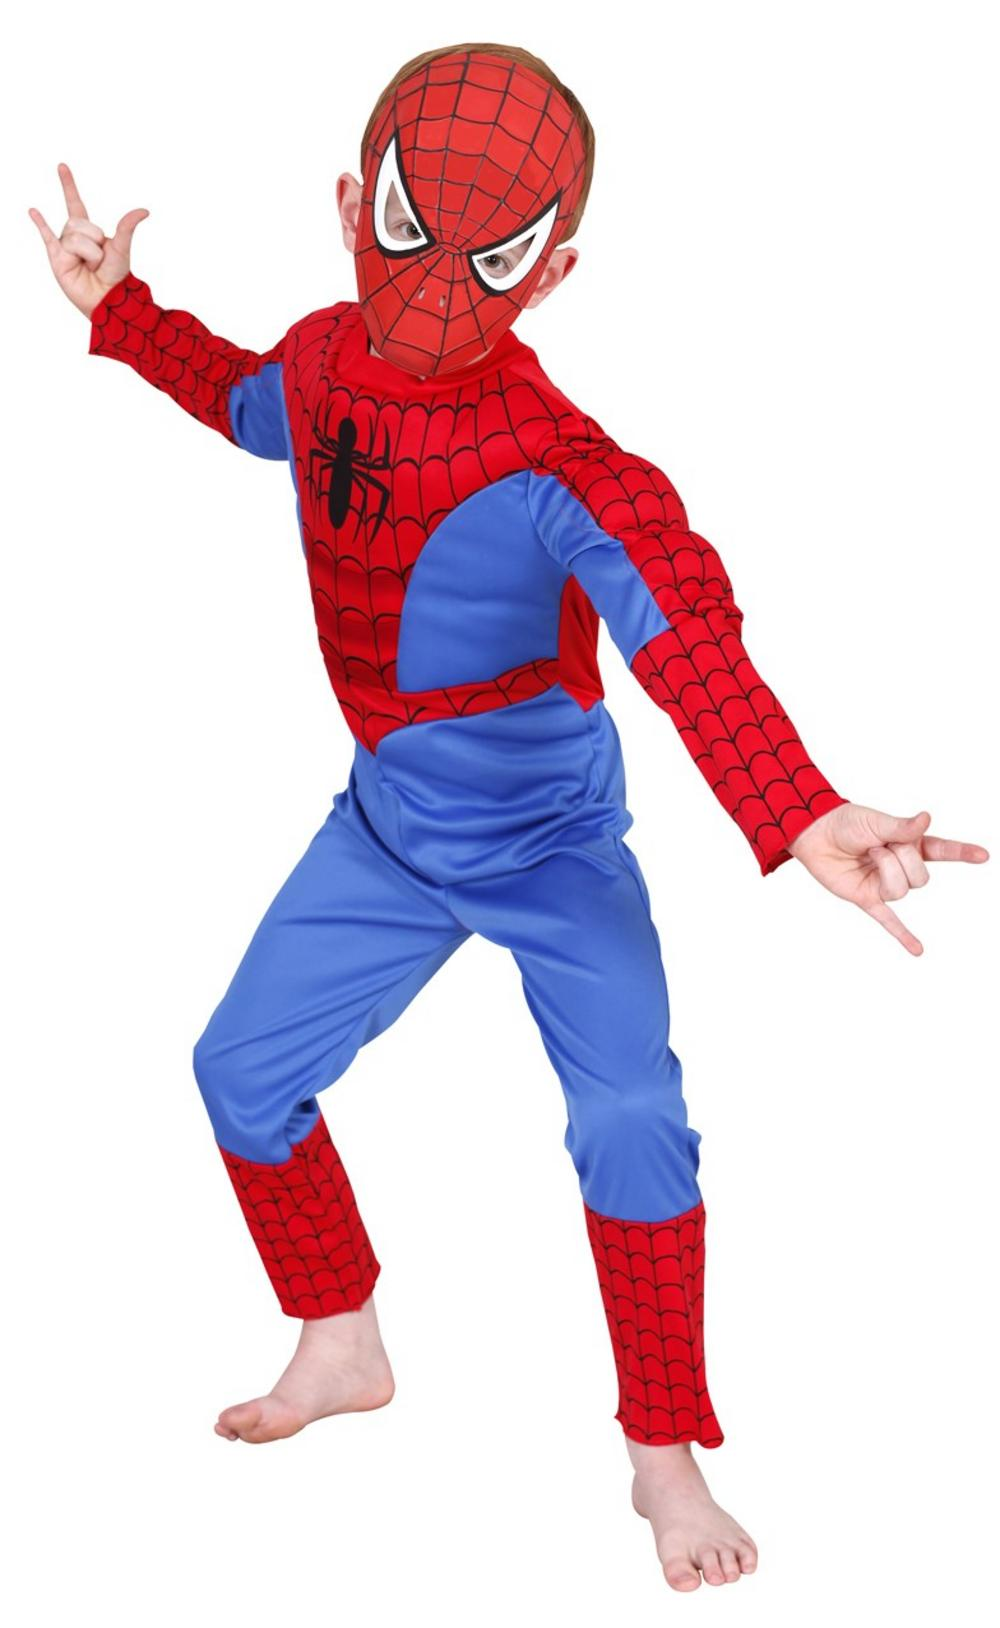 Dressy Daisy Boys' Halloween Spiderman Superhero Muscle Fancy Party Costume? Set. by Dressy Daisy. $ - $ $ 9 $ 21 99 Prime. Rubie's Marvel Ultimate Spider-Man Toddler Costume Toddler - Toddler One Color. Boys Spider-Man dress up pyjamas. Marvel Boys' Spiderman 3 Piece Playwear Set-Fleece. by Marvel.